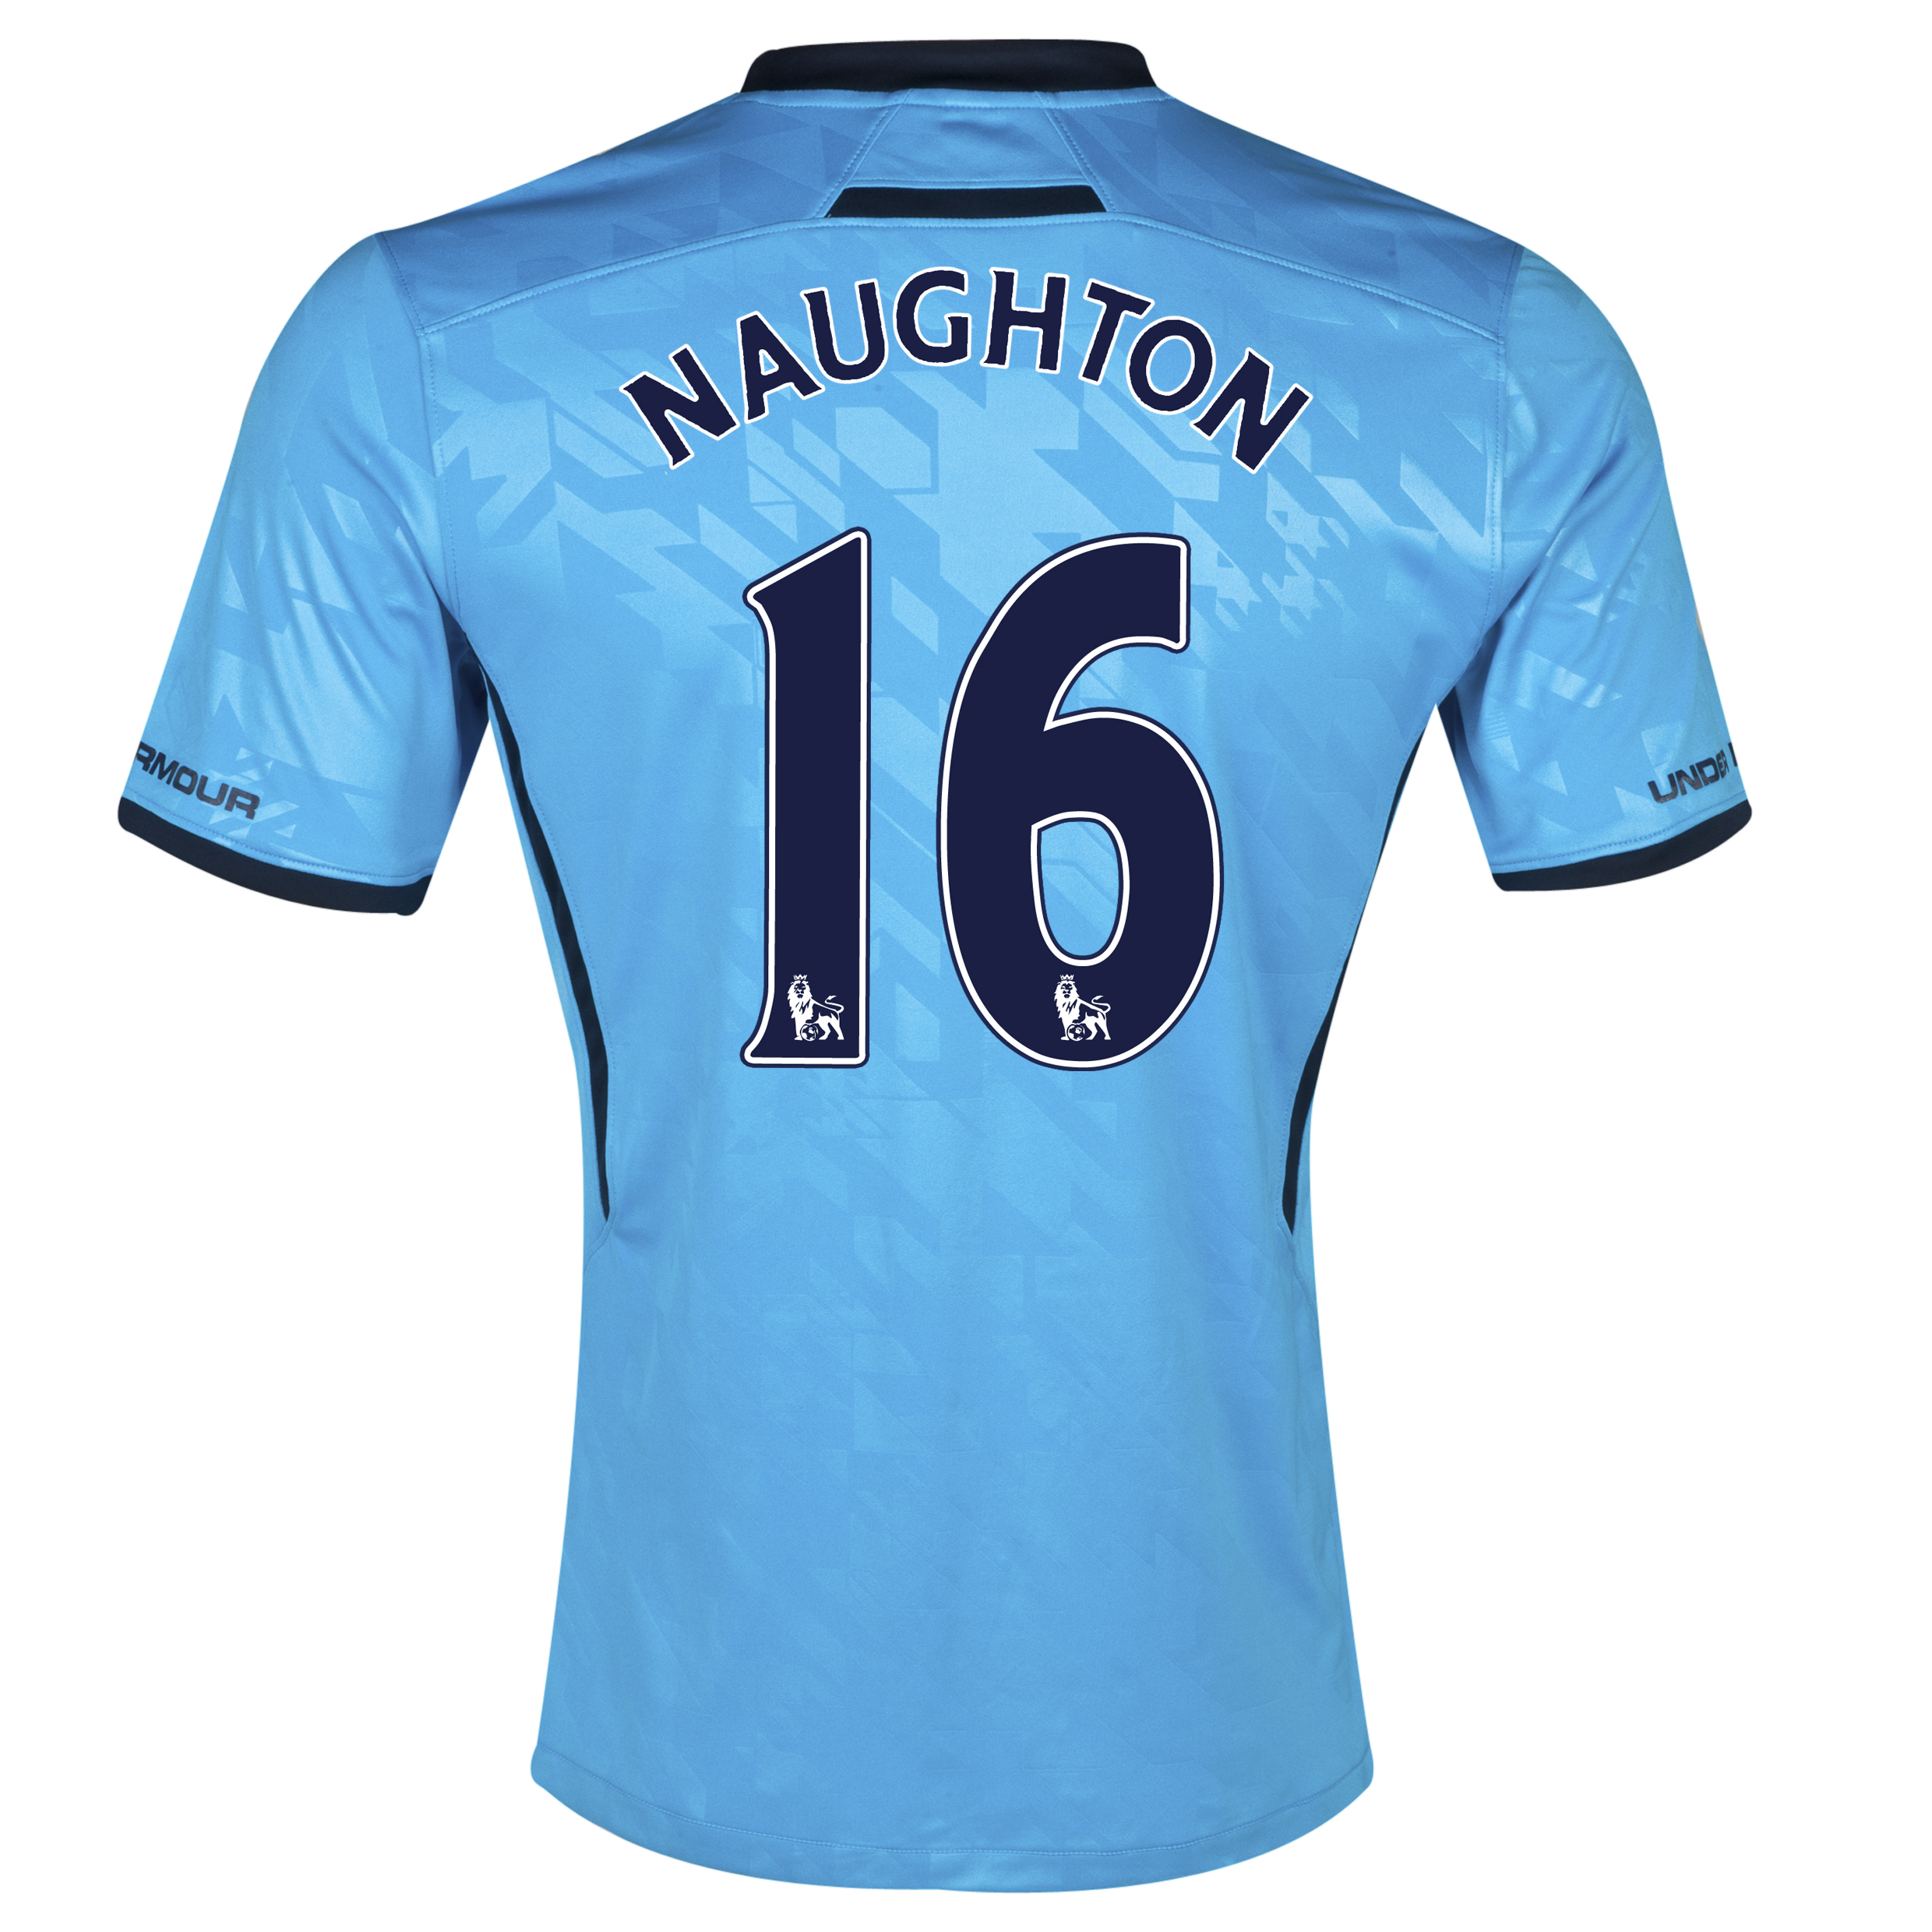 Tottenham Hotspur Away Shirt 2013/14 - Womens with Naughton 16 printing